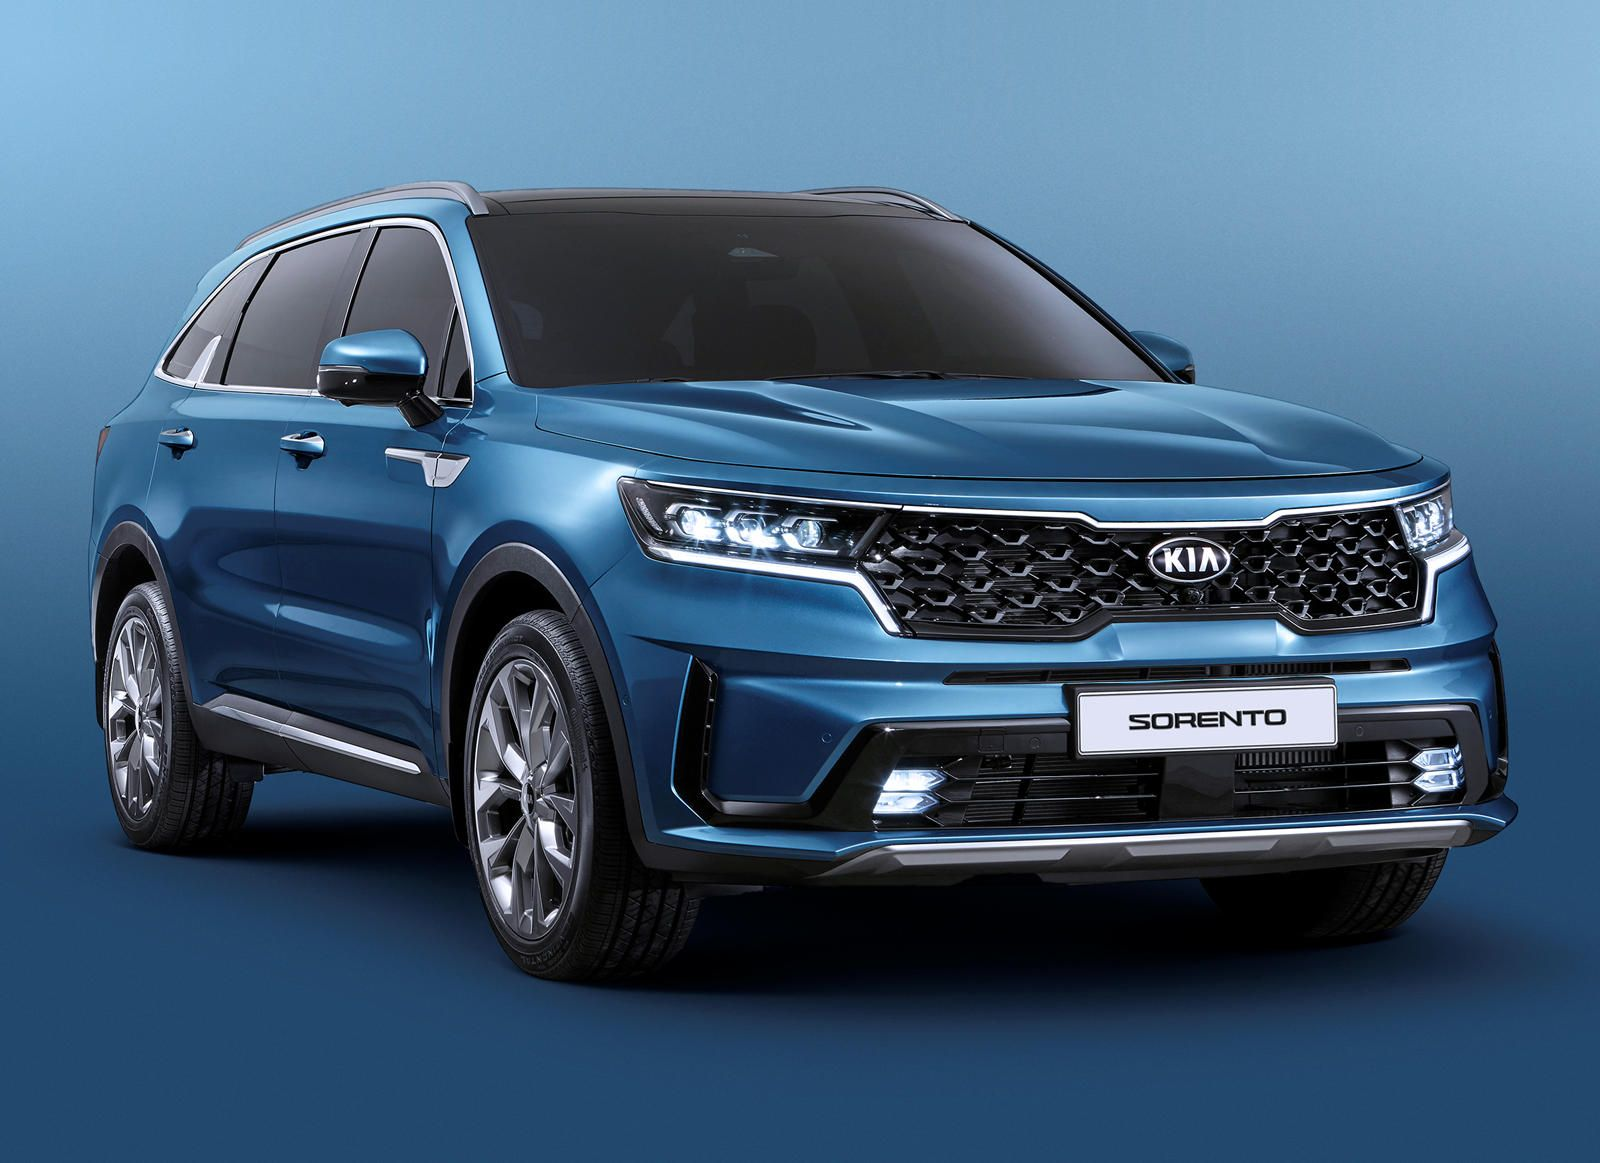 Meet The All New 2021 Kia Sorento In 2020 With Images Kia